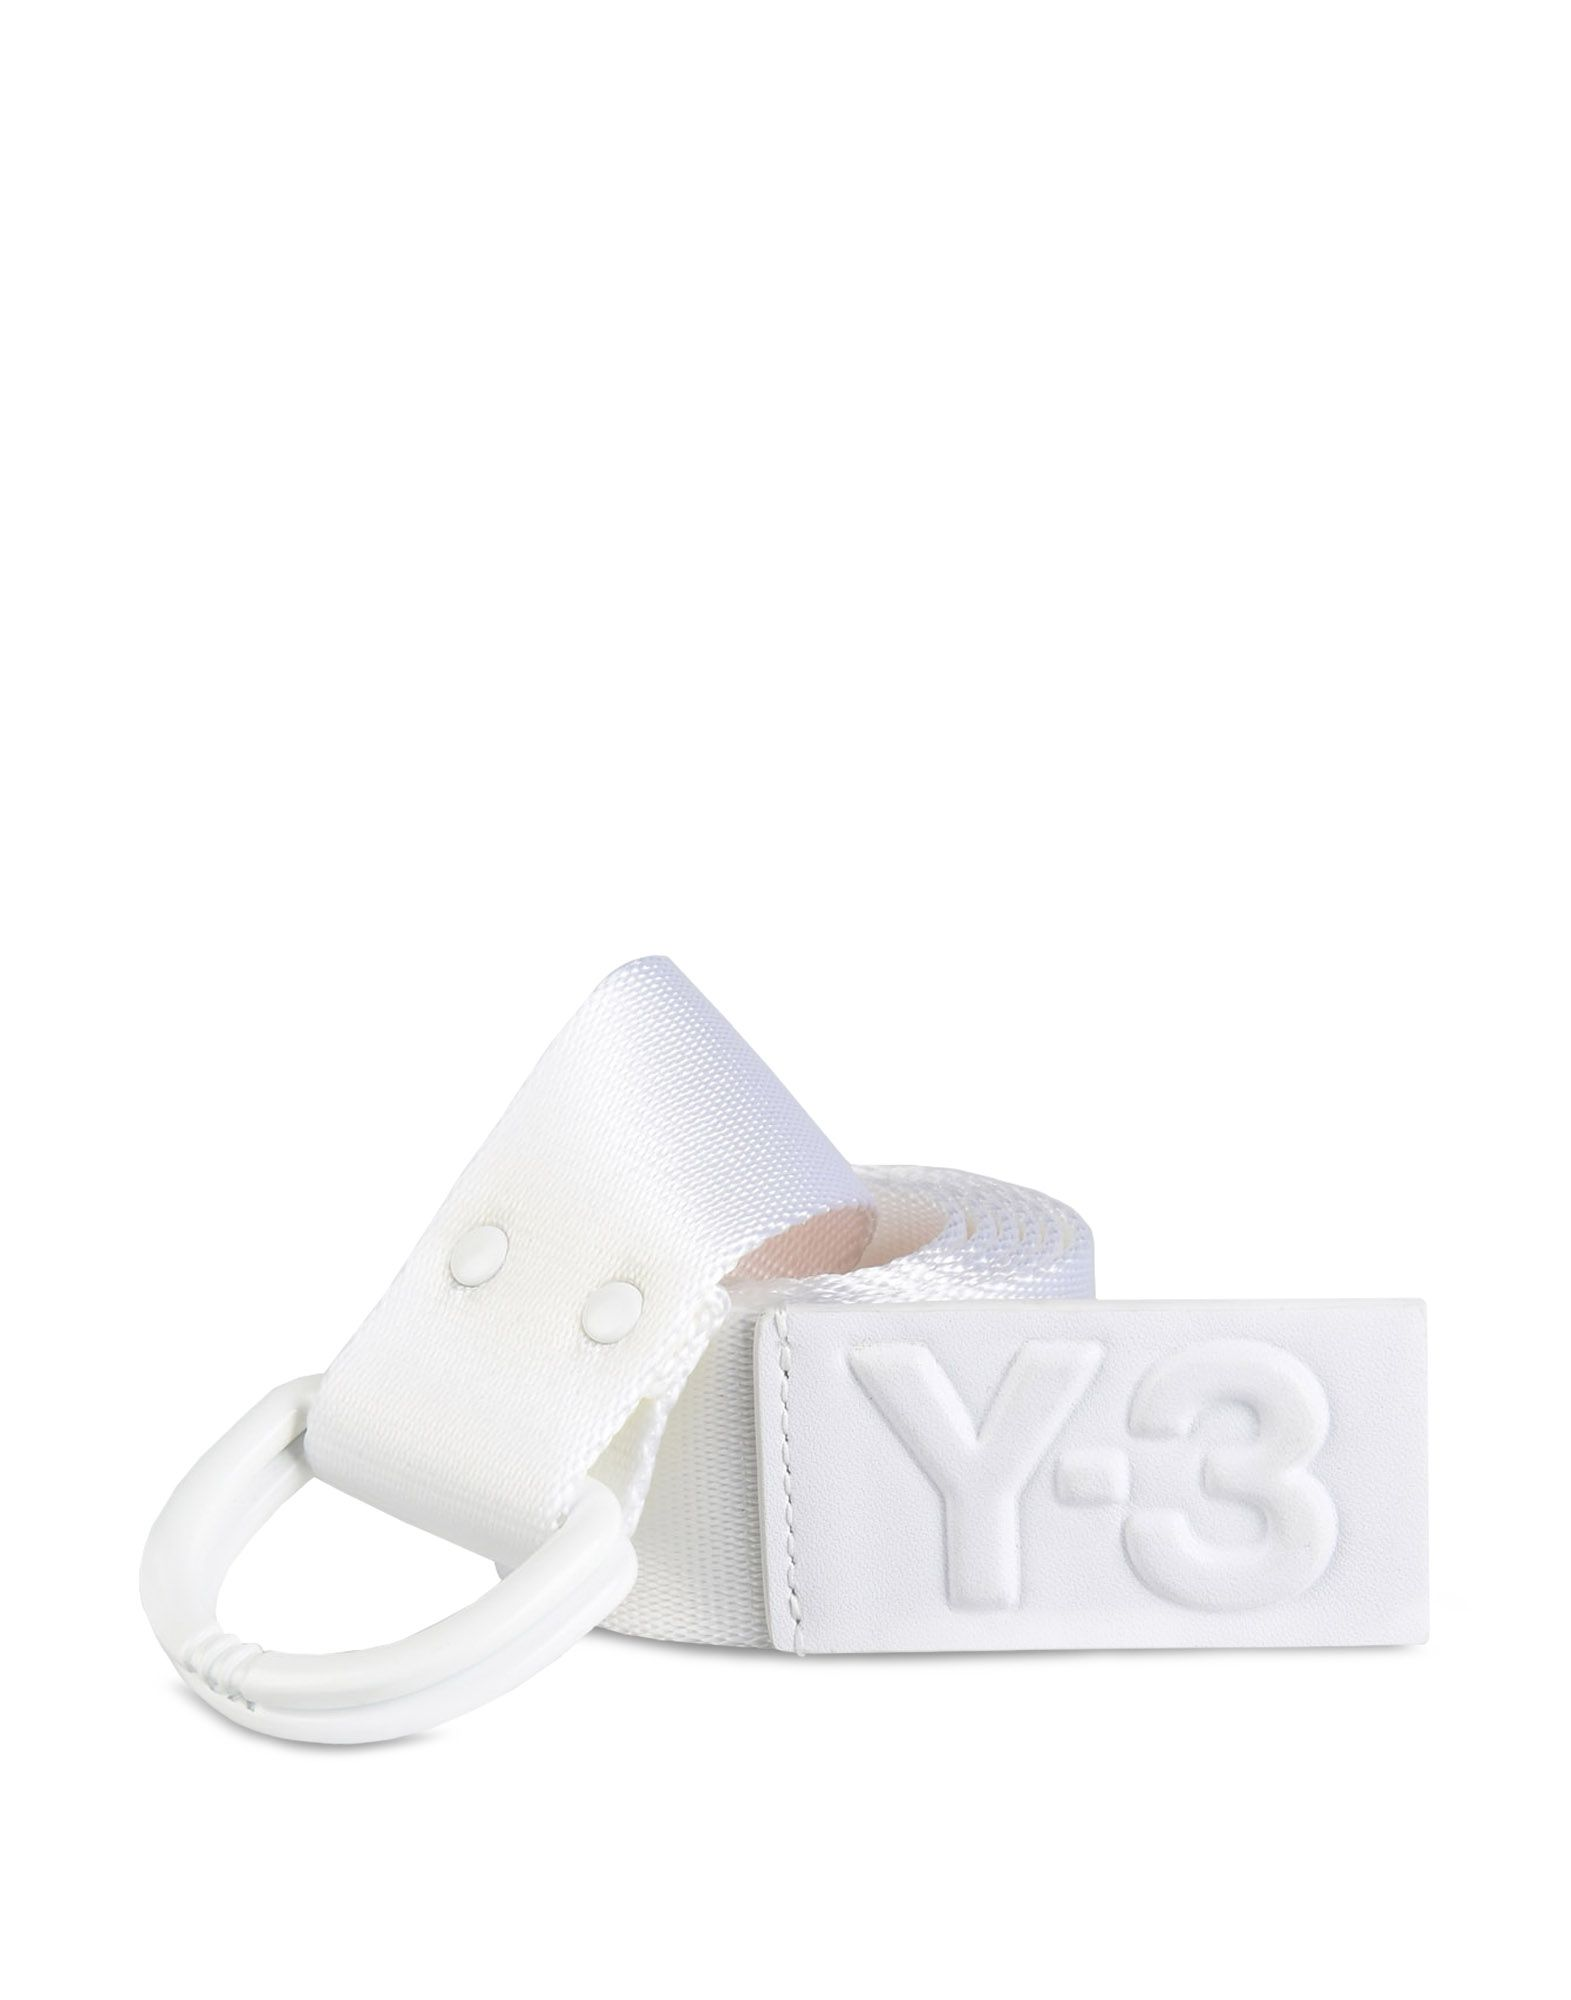 Y 3 YOHJI WHITE BELT for Women   Adidas Y-3 Official Store